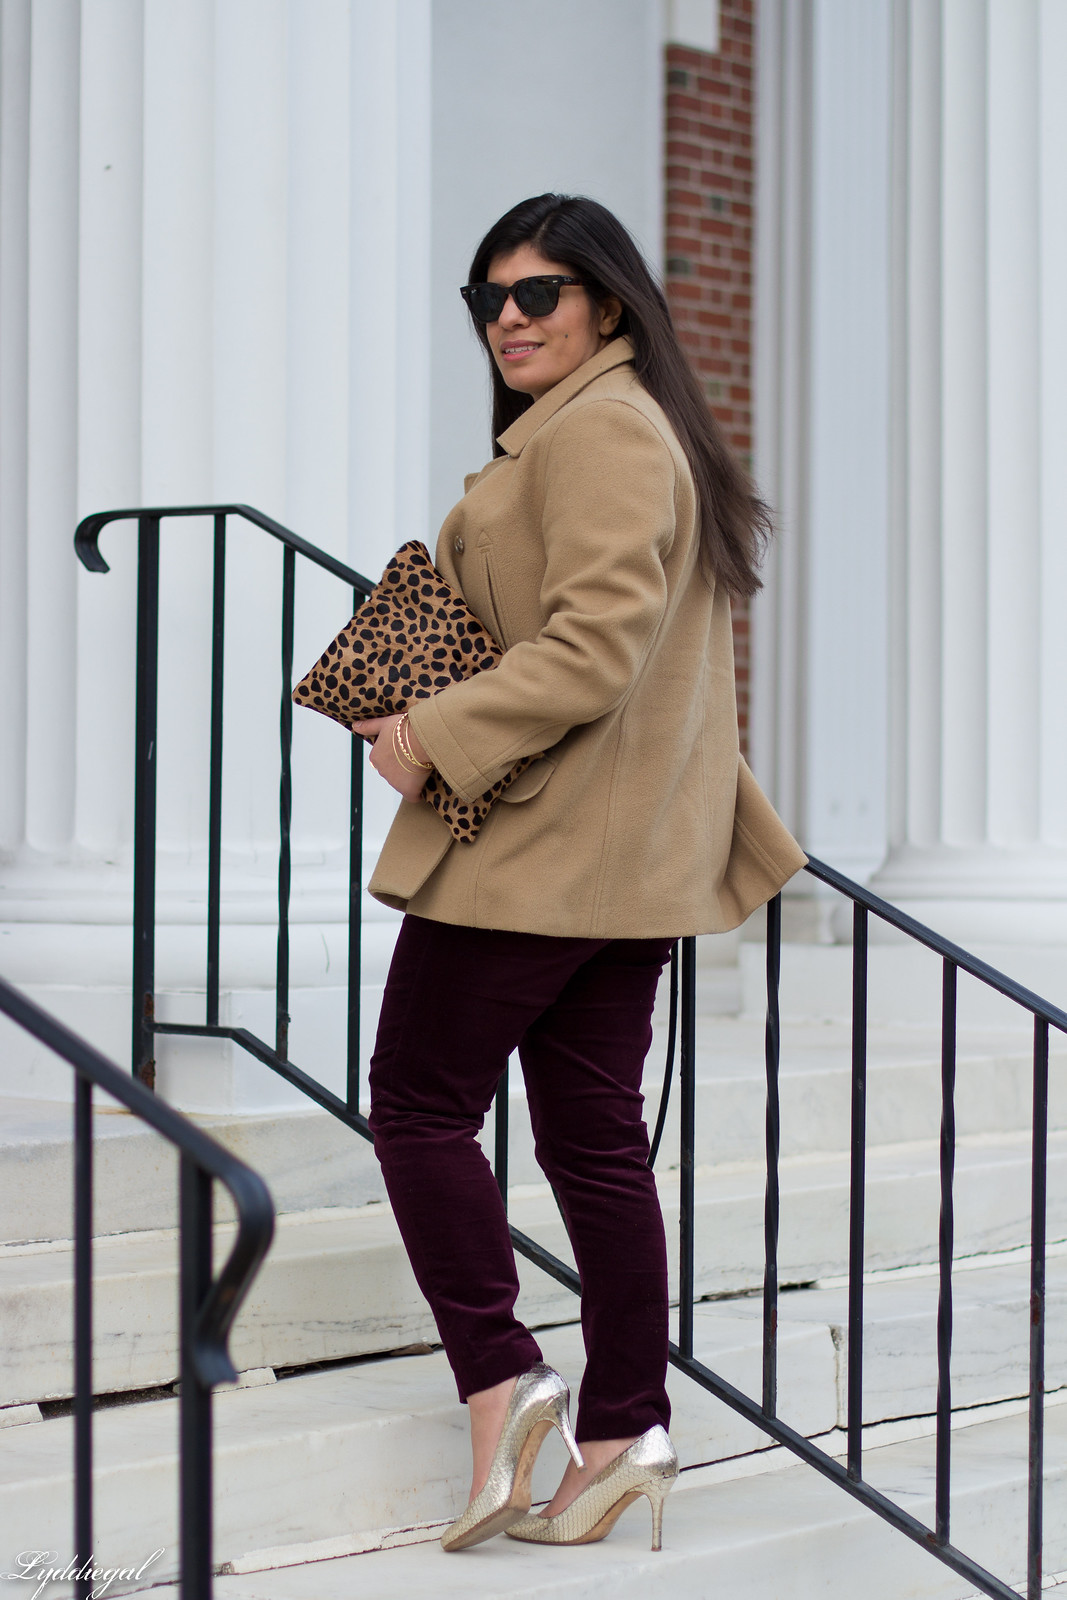 velvet pants, camel coat, silver pumps, leopard clutch-11.jpg